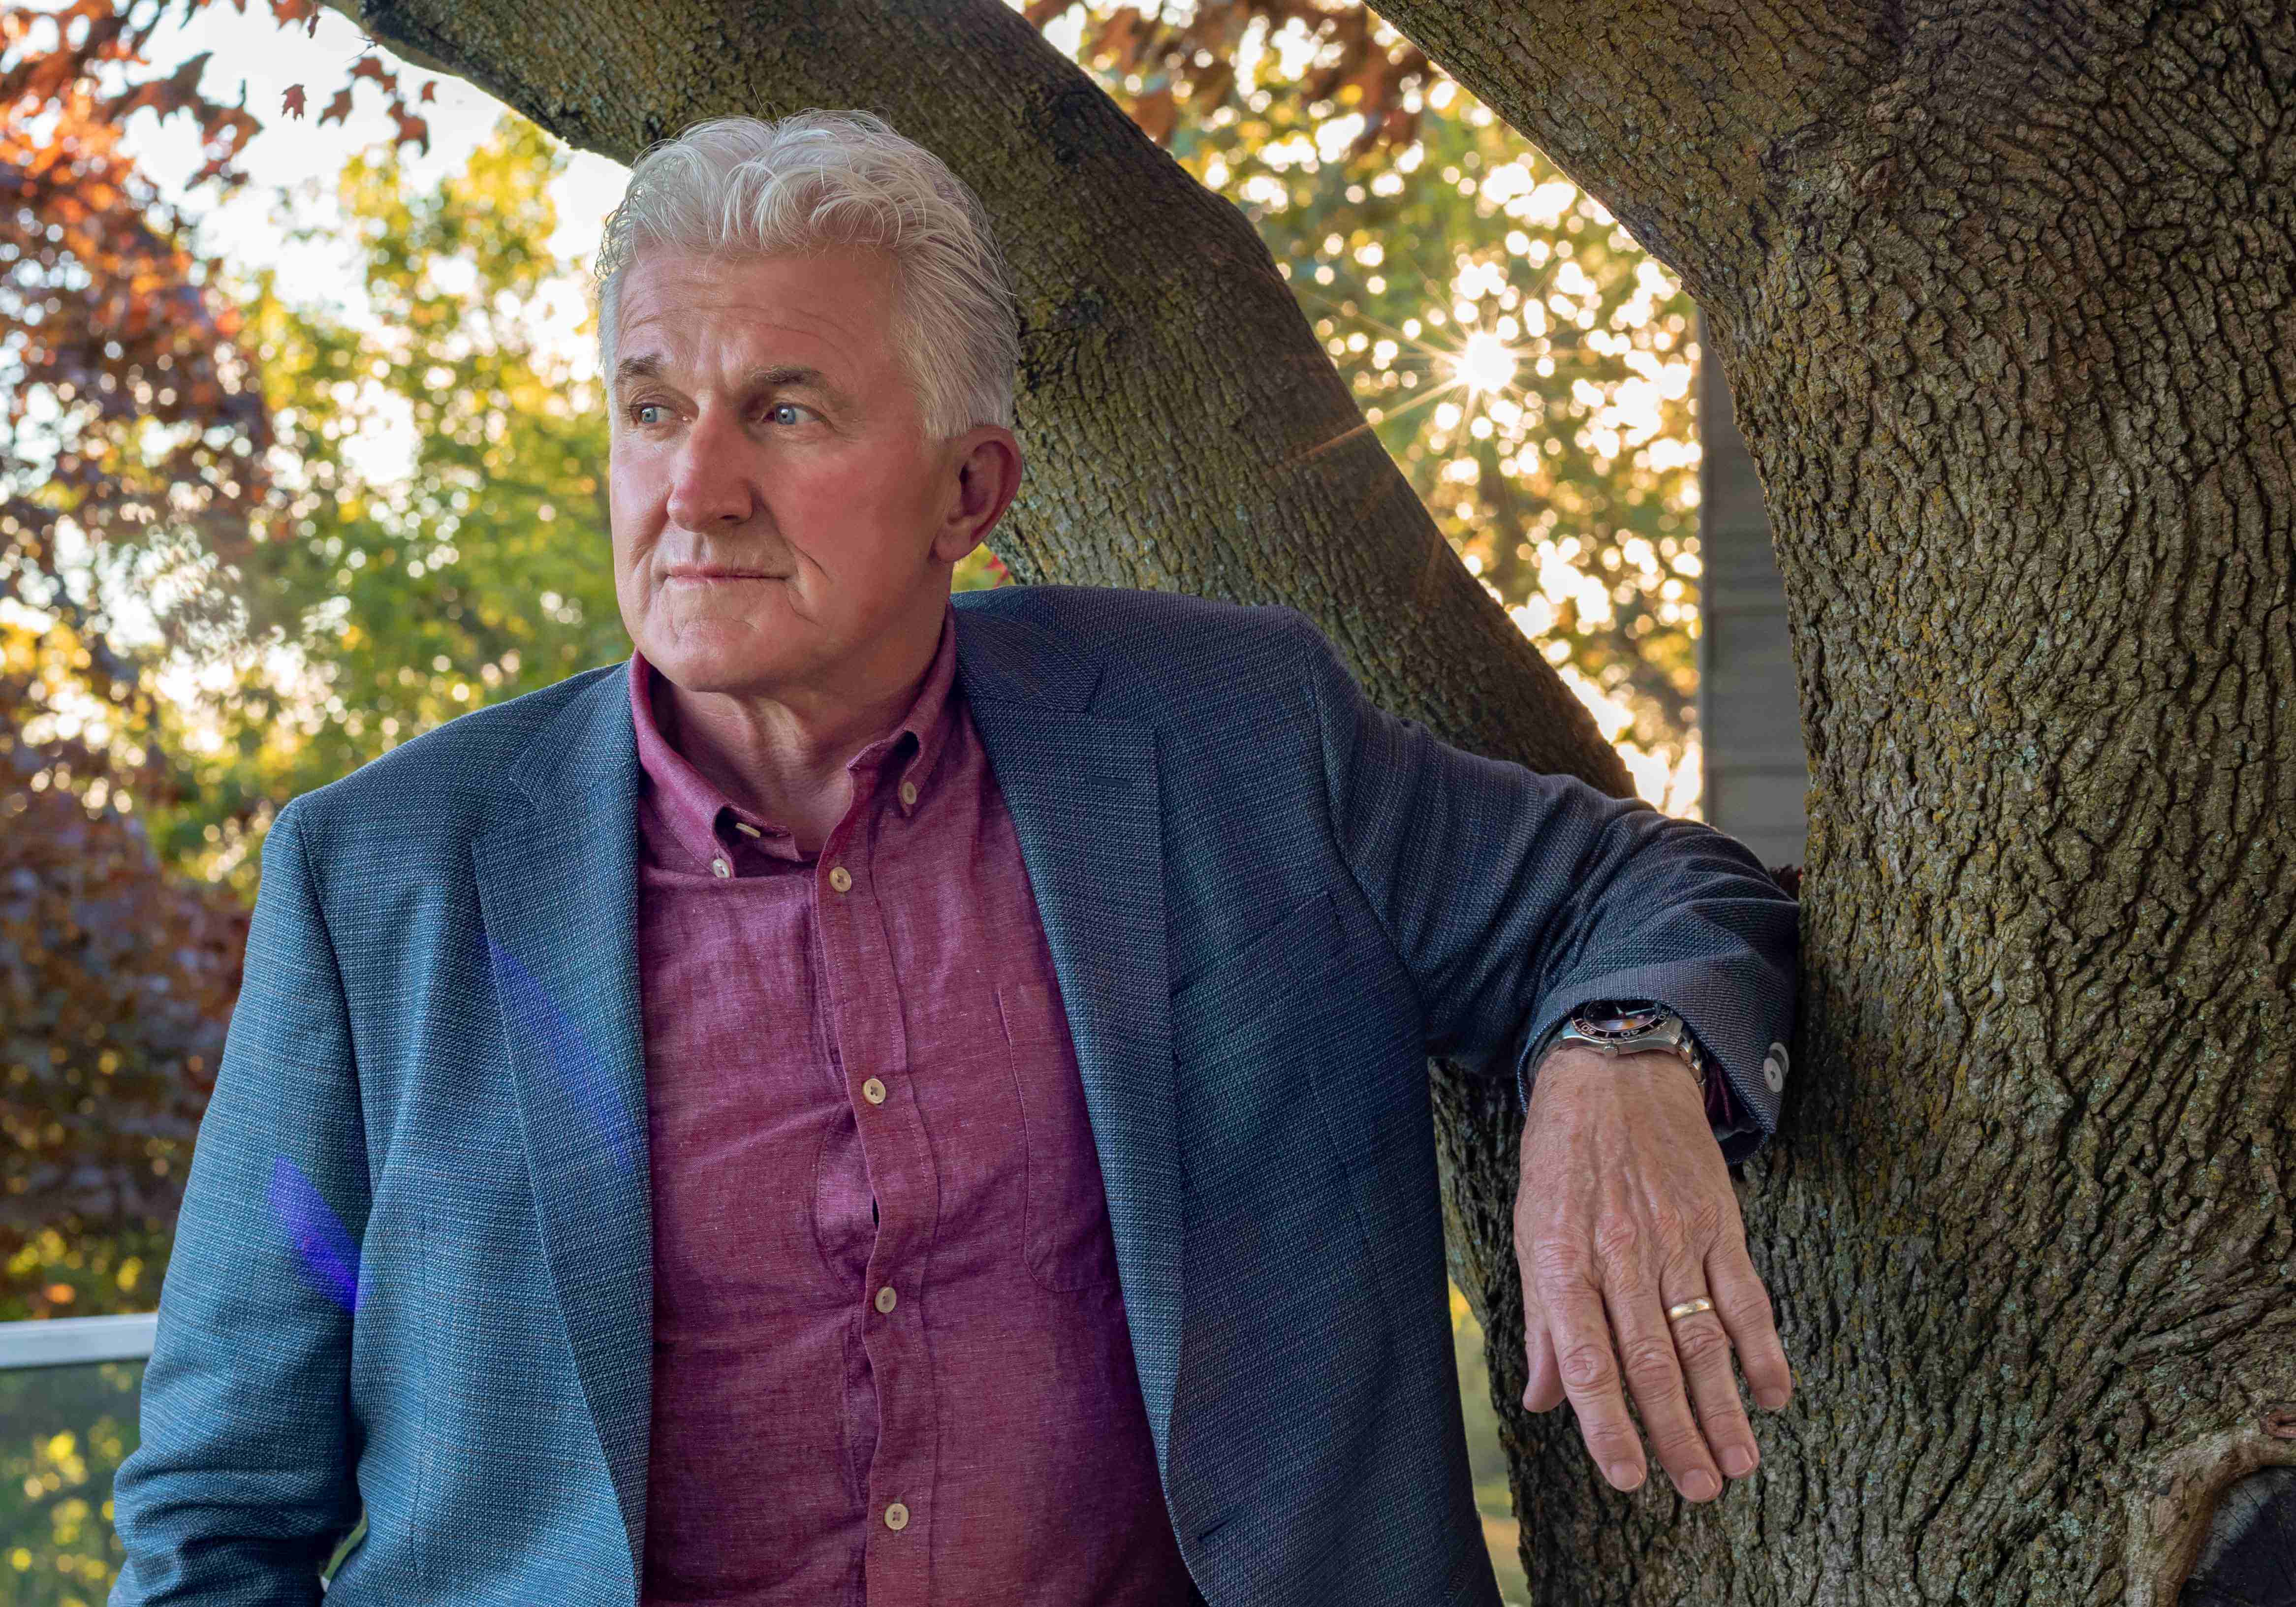 A graceful, smart, fashionable mature man in casual suit standing in front of a tree - photo on the website of Richard's Clothing - a men's clothing store London, Ontario